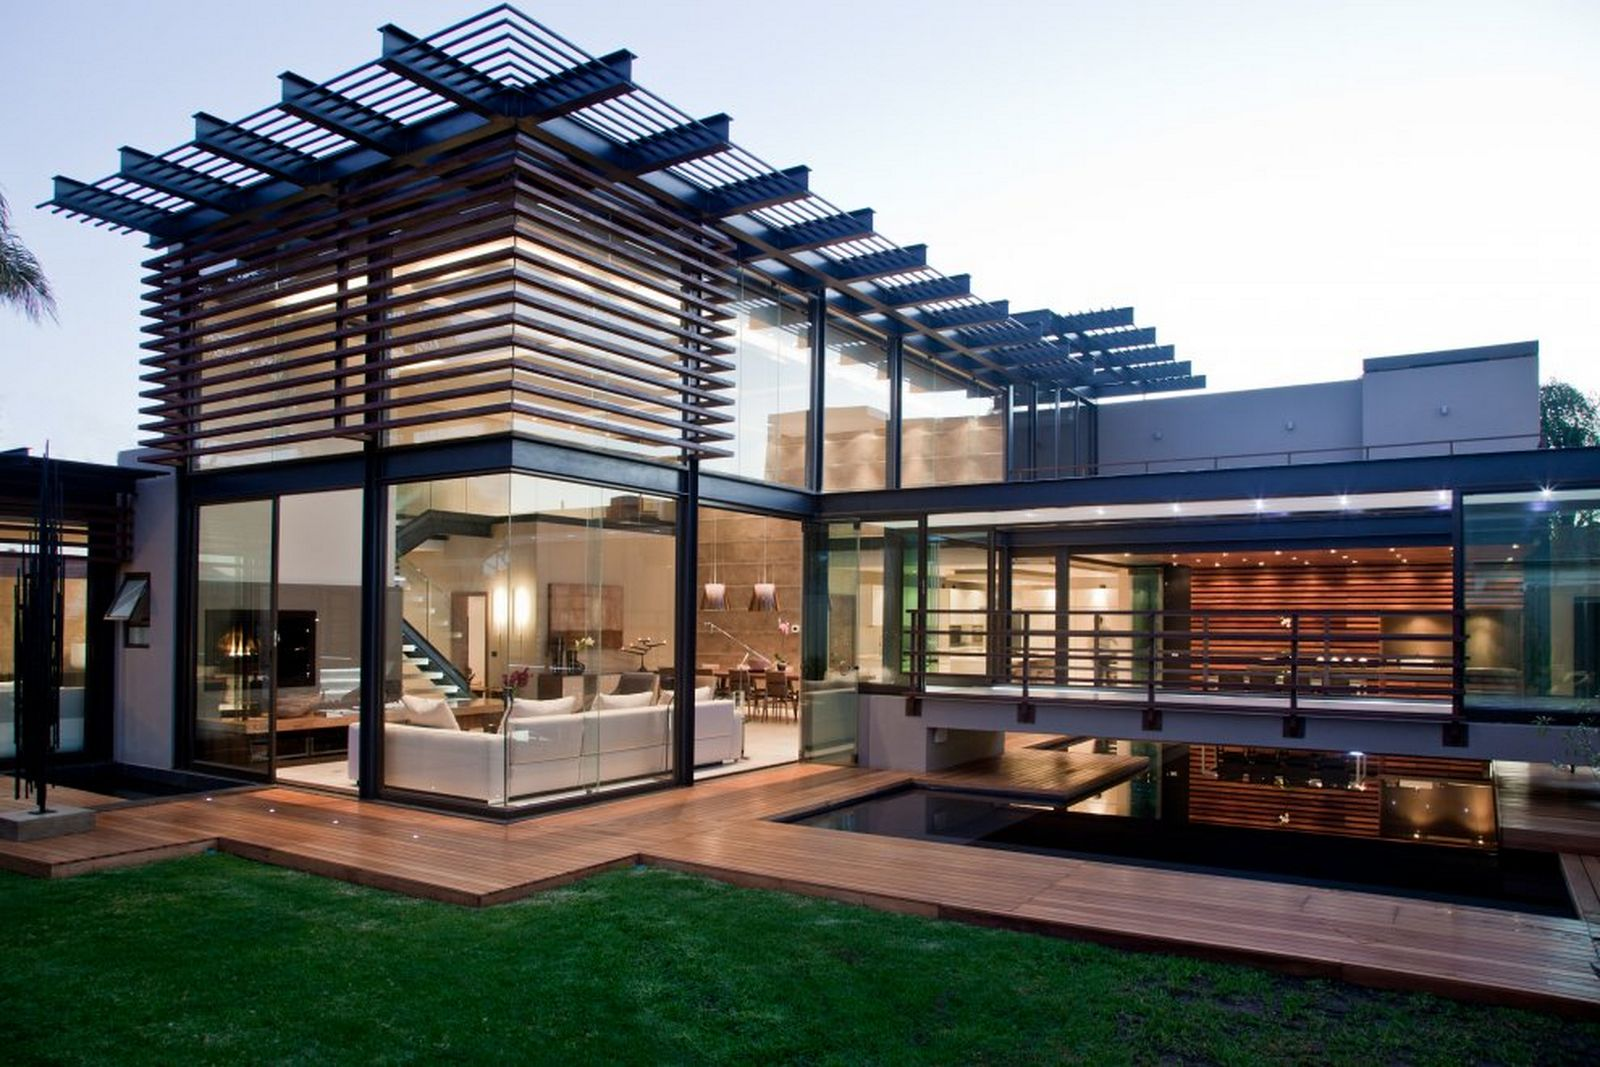 30 Contemporary Home Exterior Design Ideas - The WoW Style on Modern House Ideas  id=72183